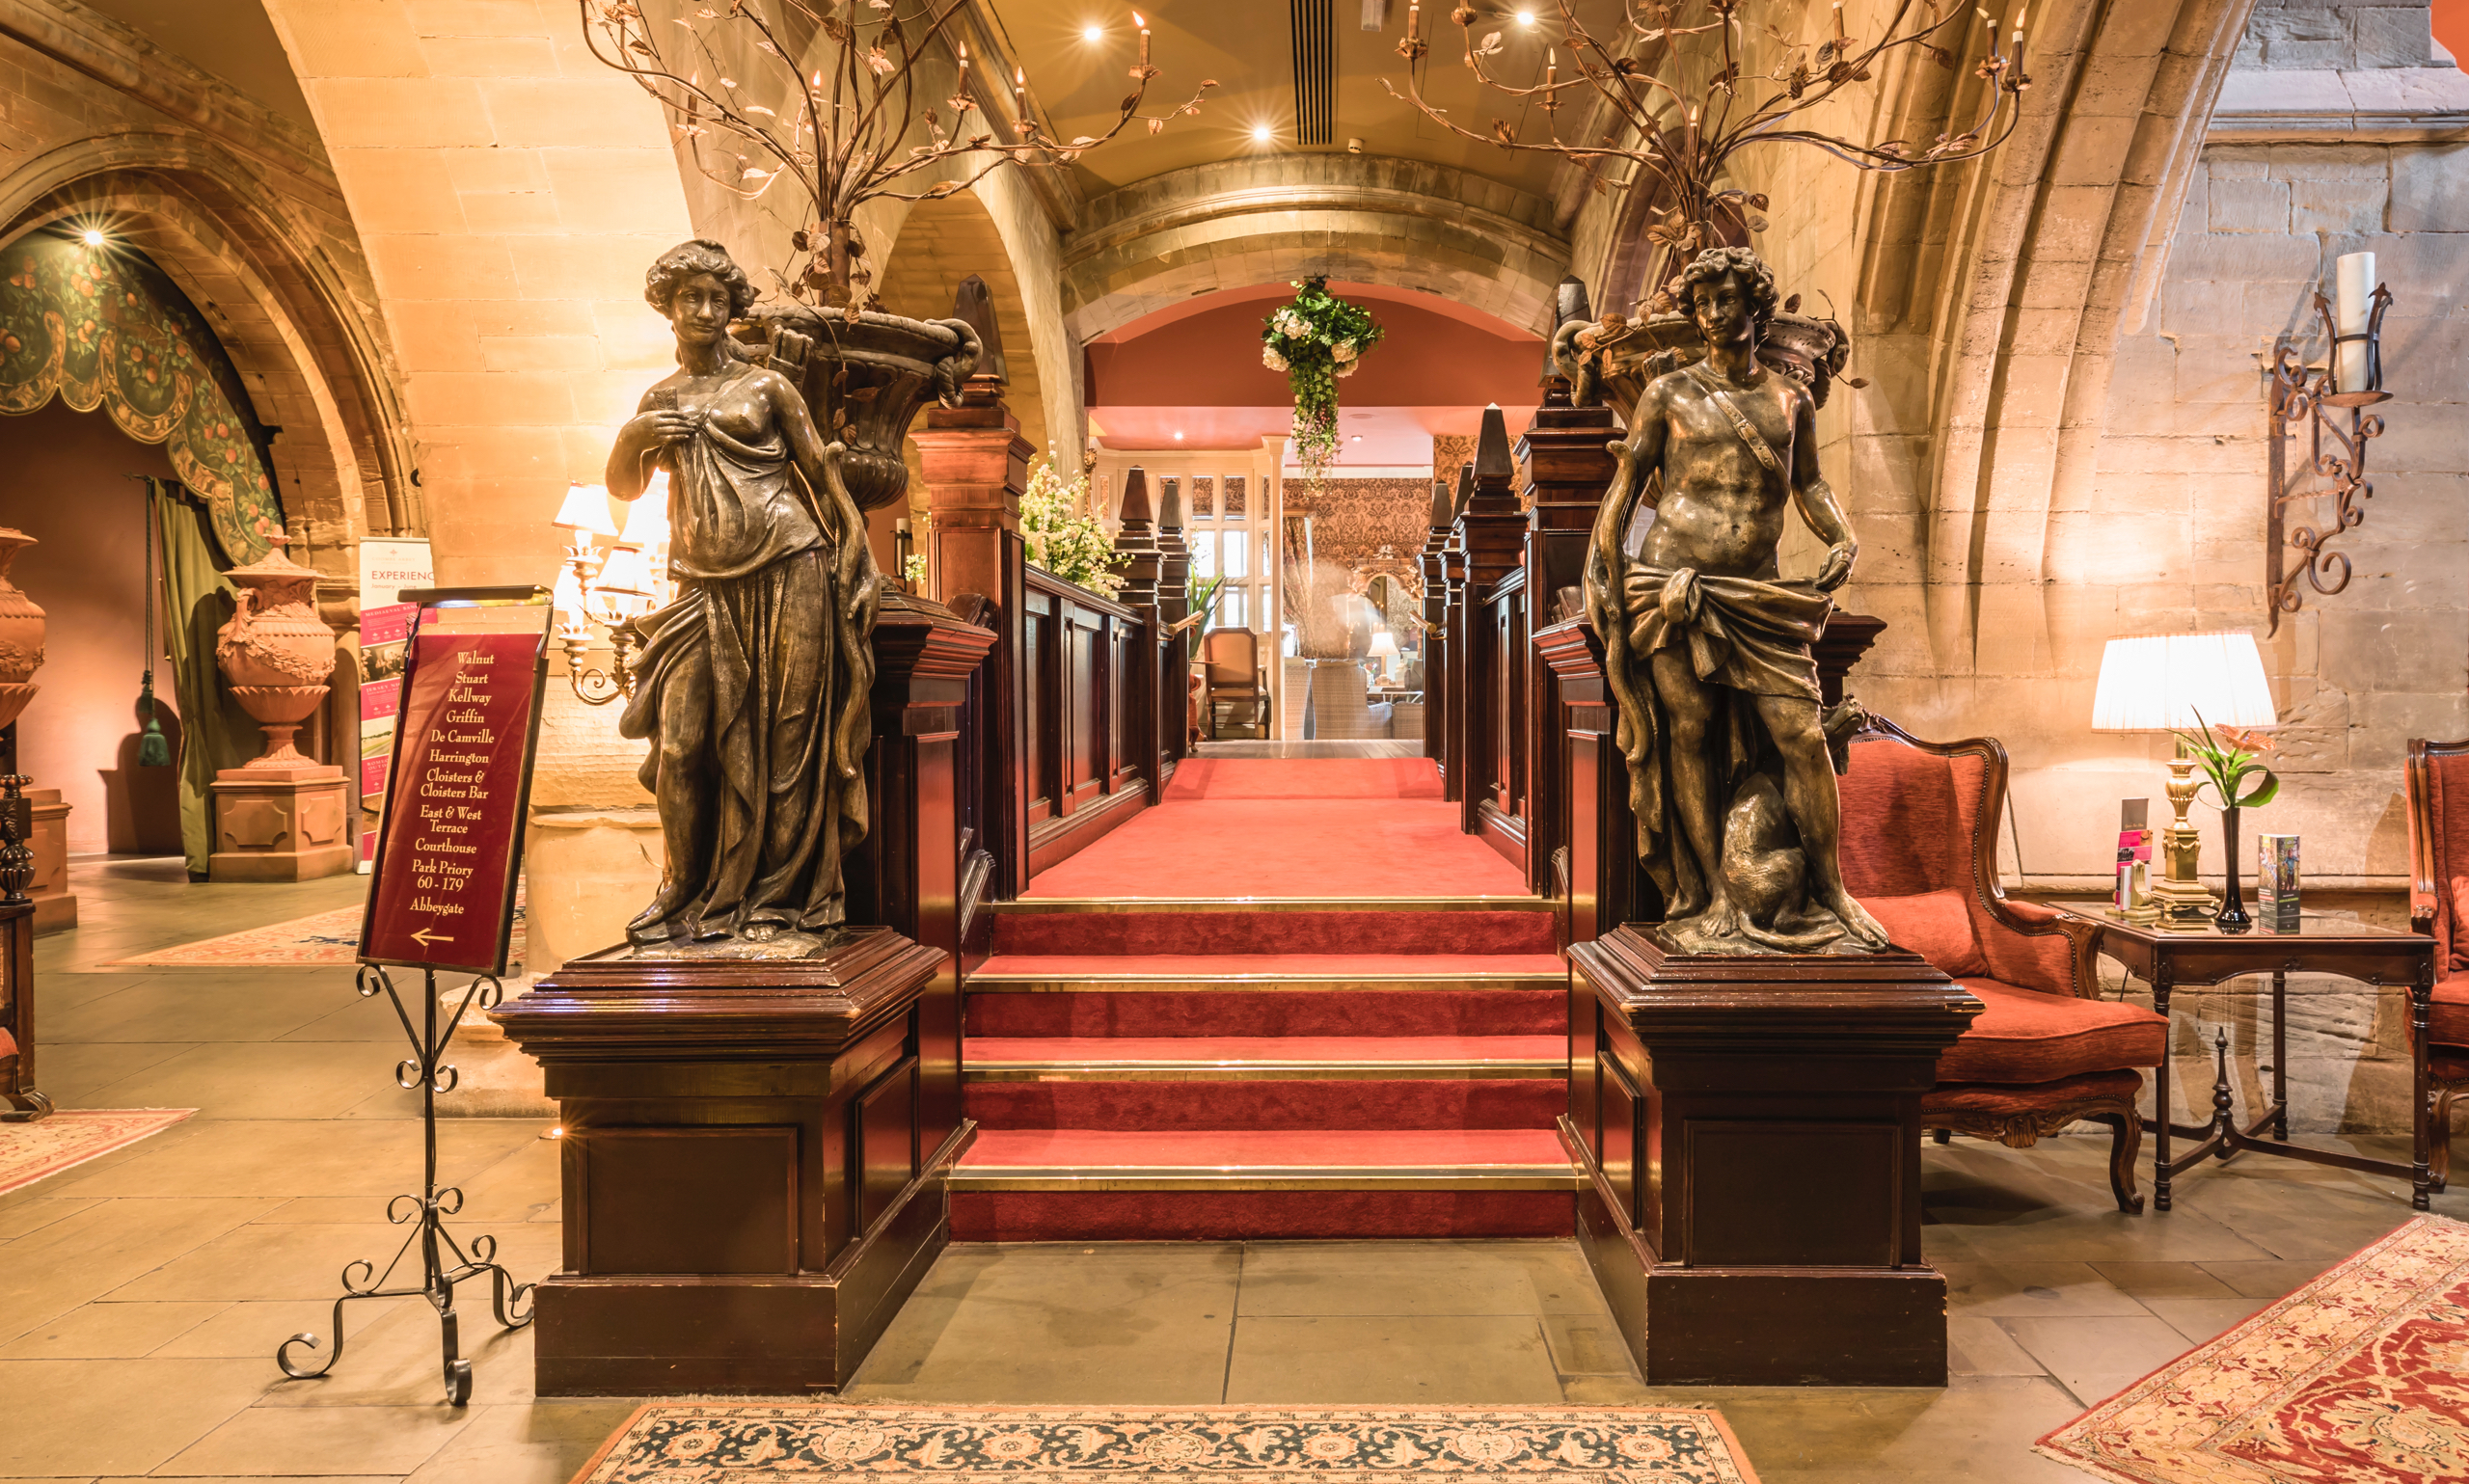 Coombe Abbey Hotel safety and security measures